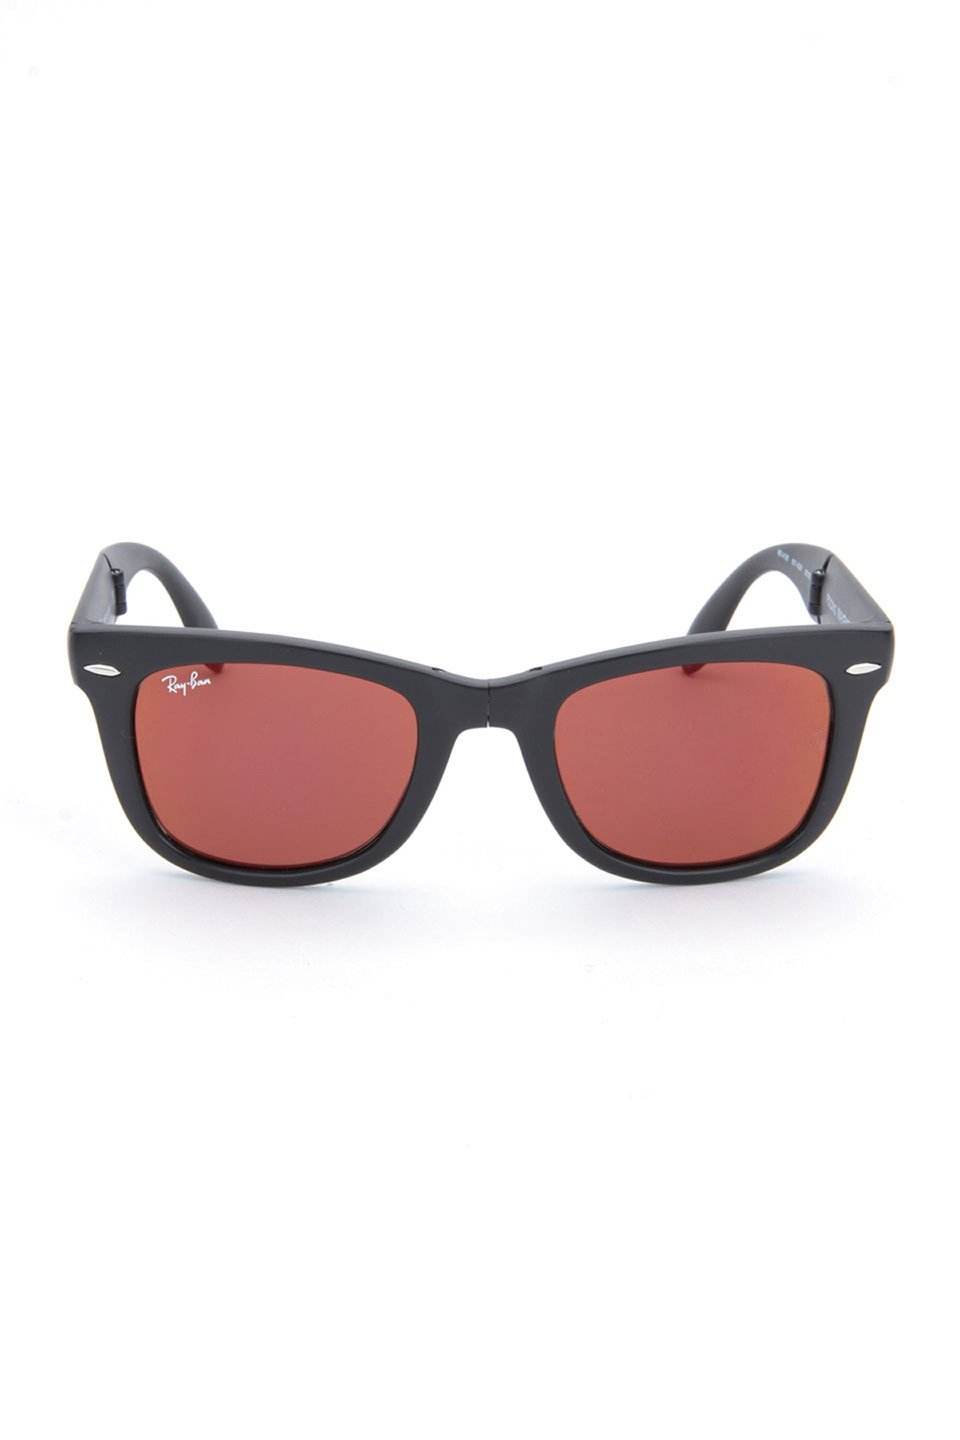 Folding Wayfarer Men's Sunglasses in Black/Red Mirror